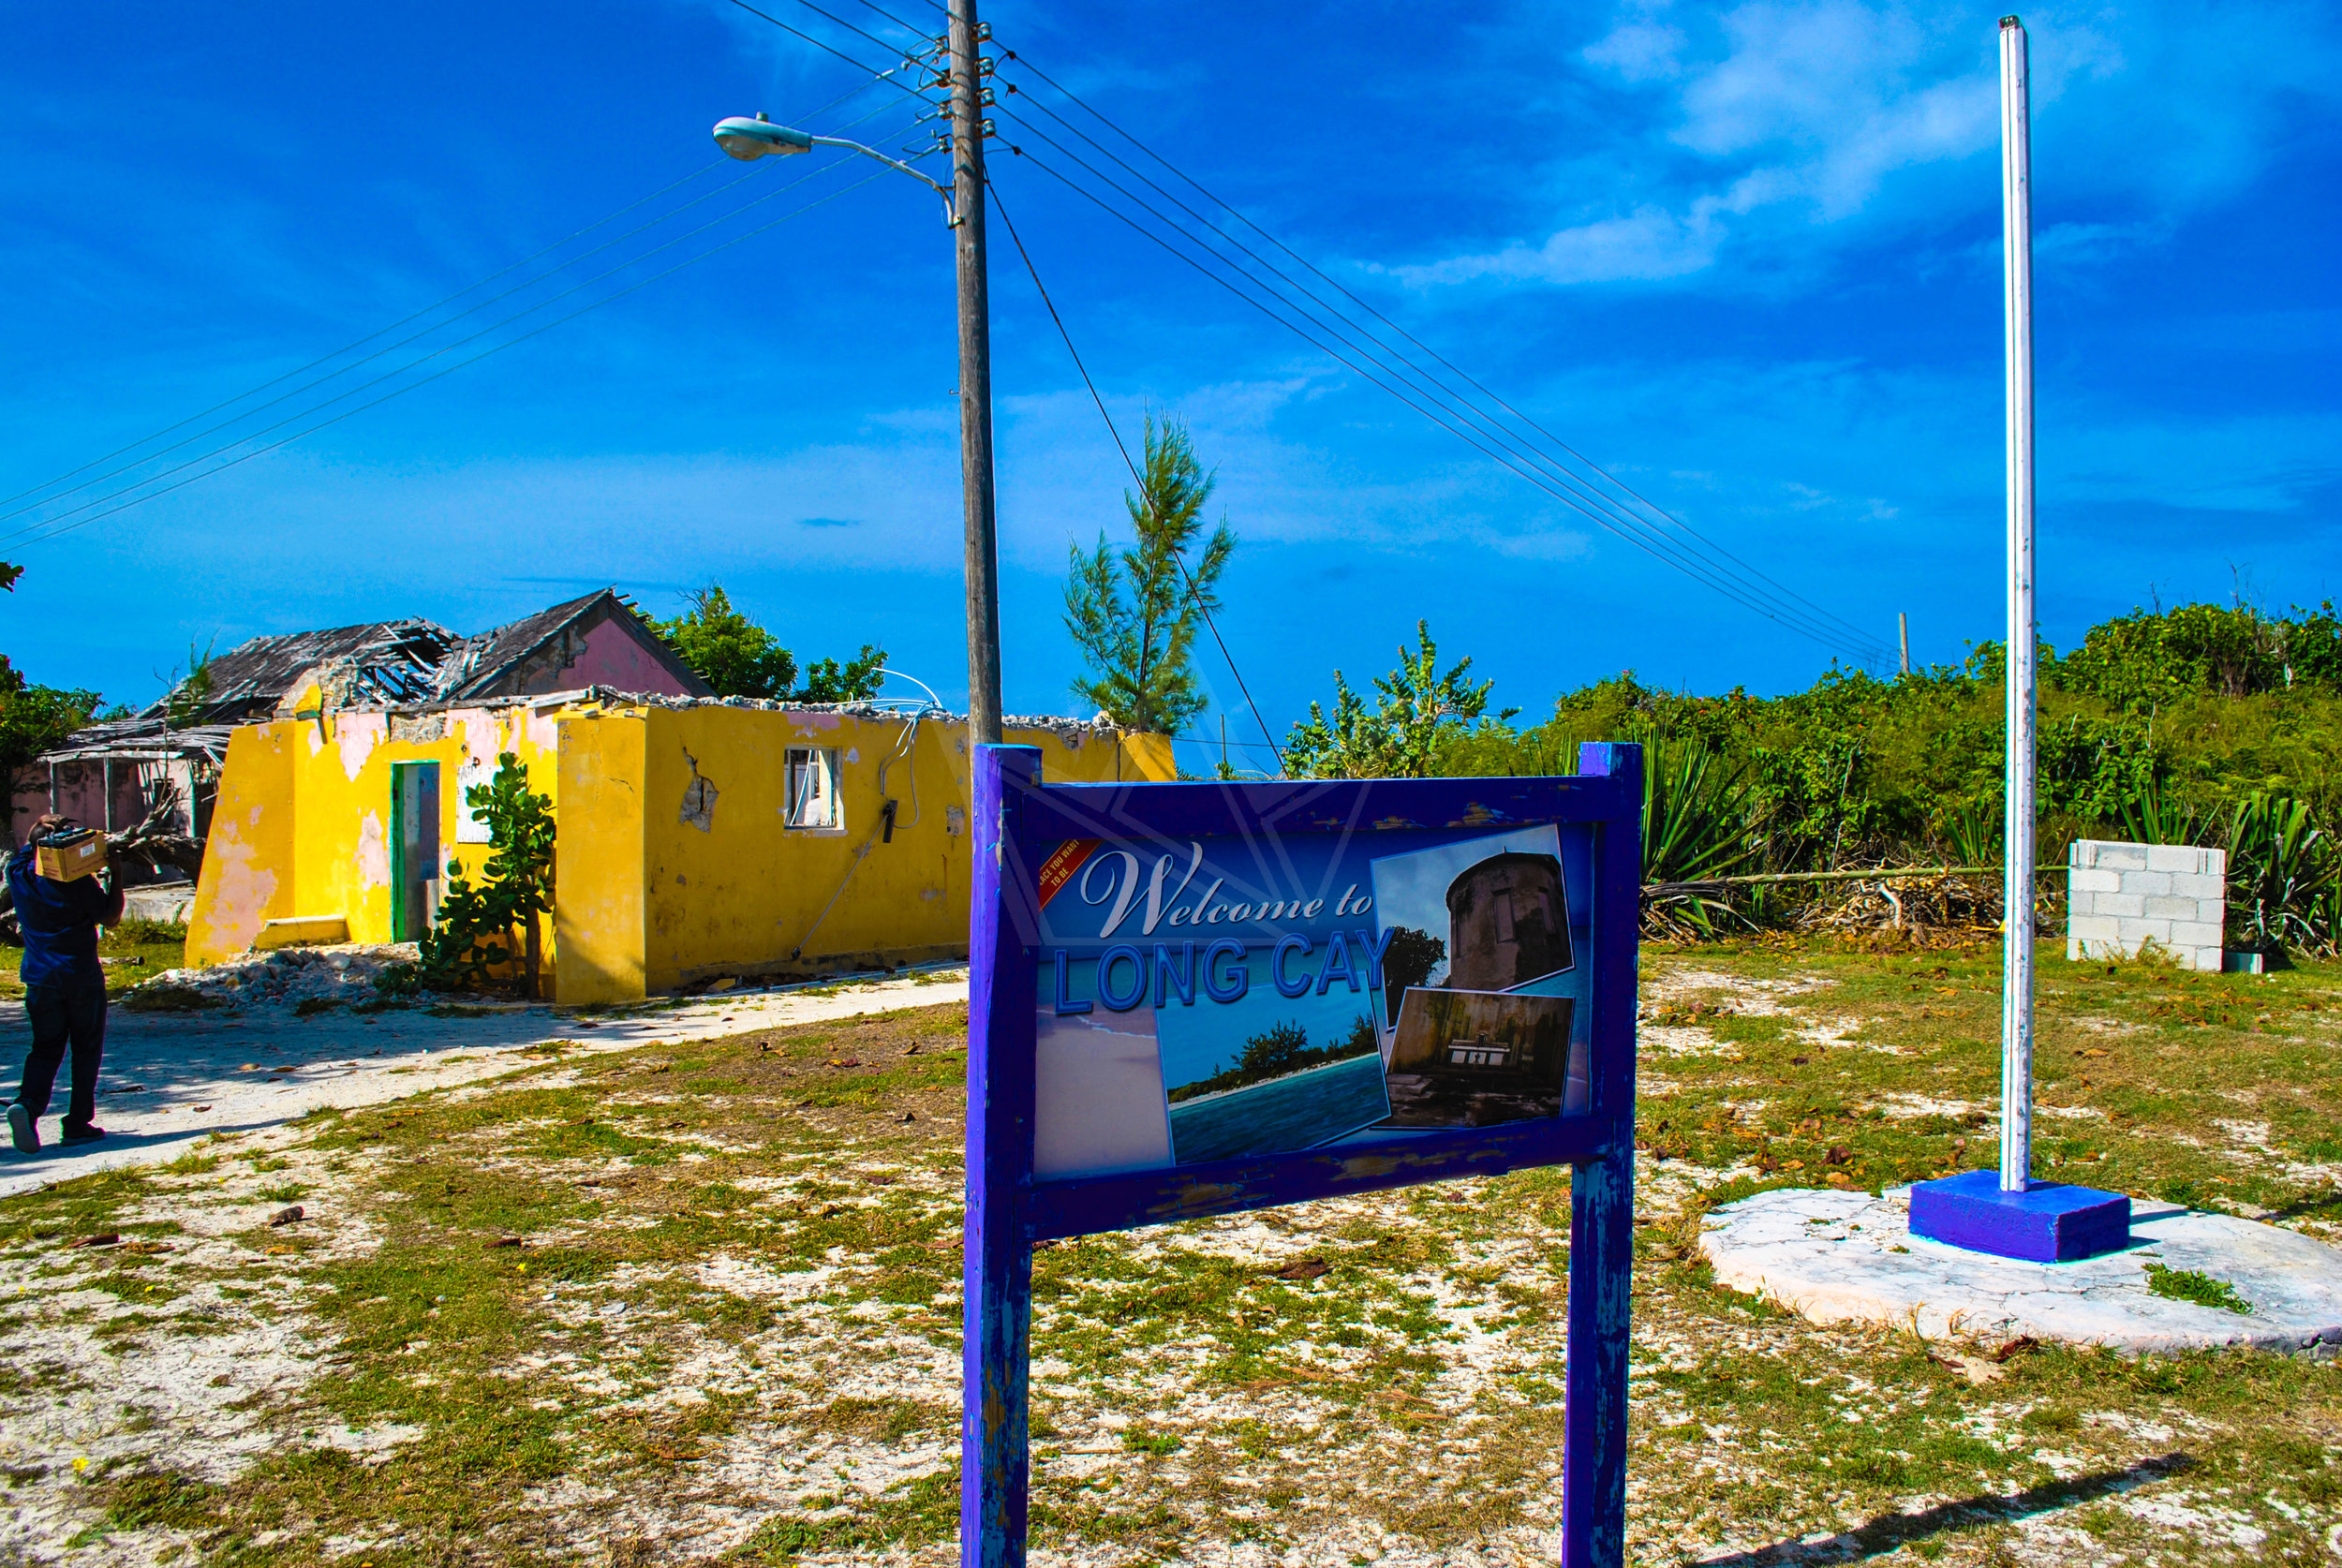 Welcome sign just off of the dock in Albert Town, Long Cay